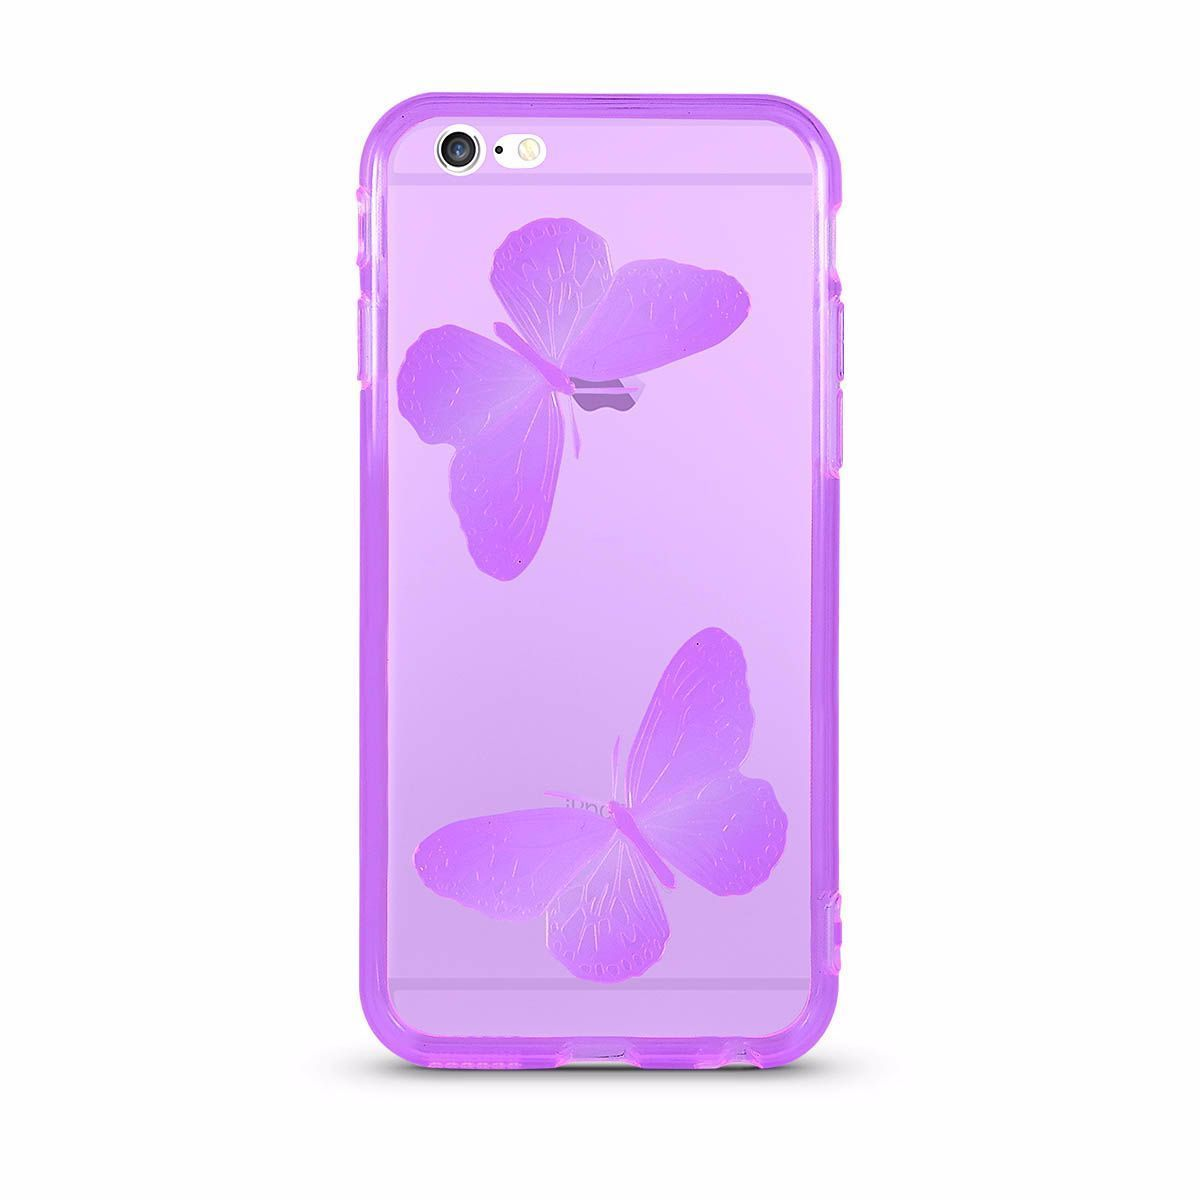 Colormot Case for iPhone 7 /8 - Purple